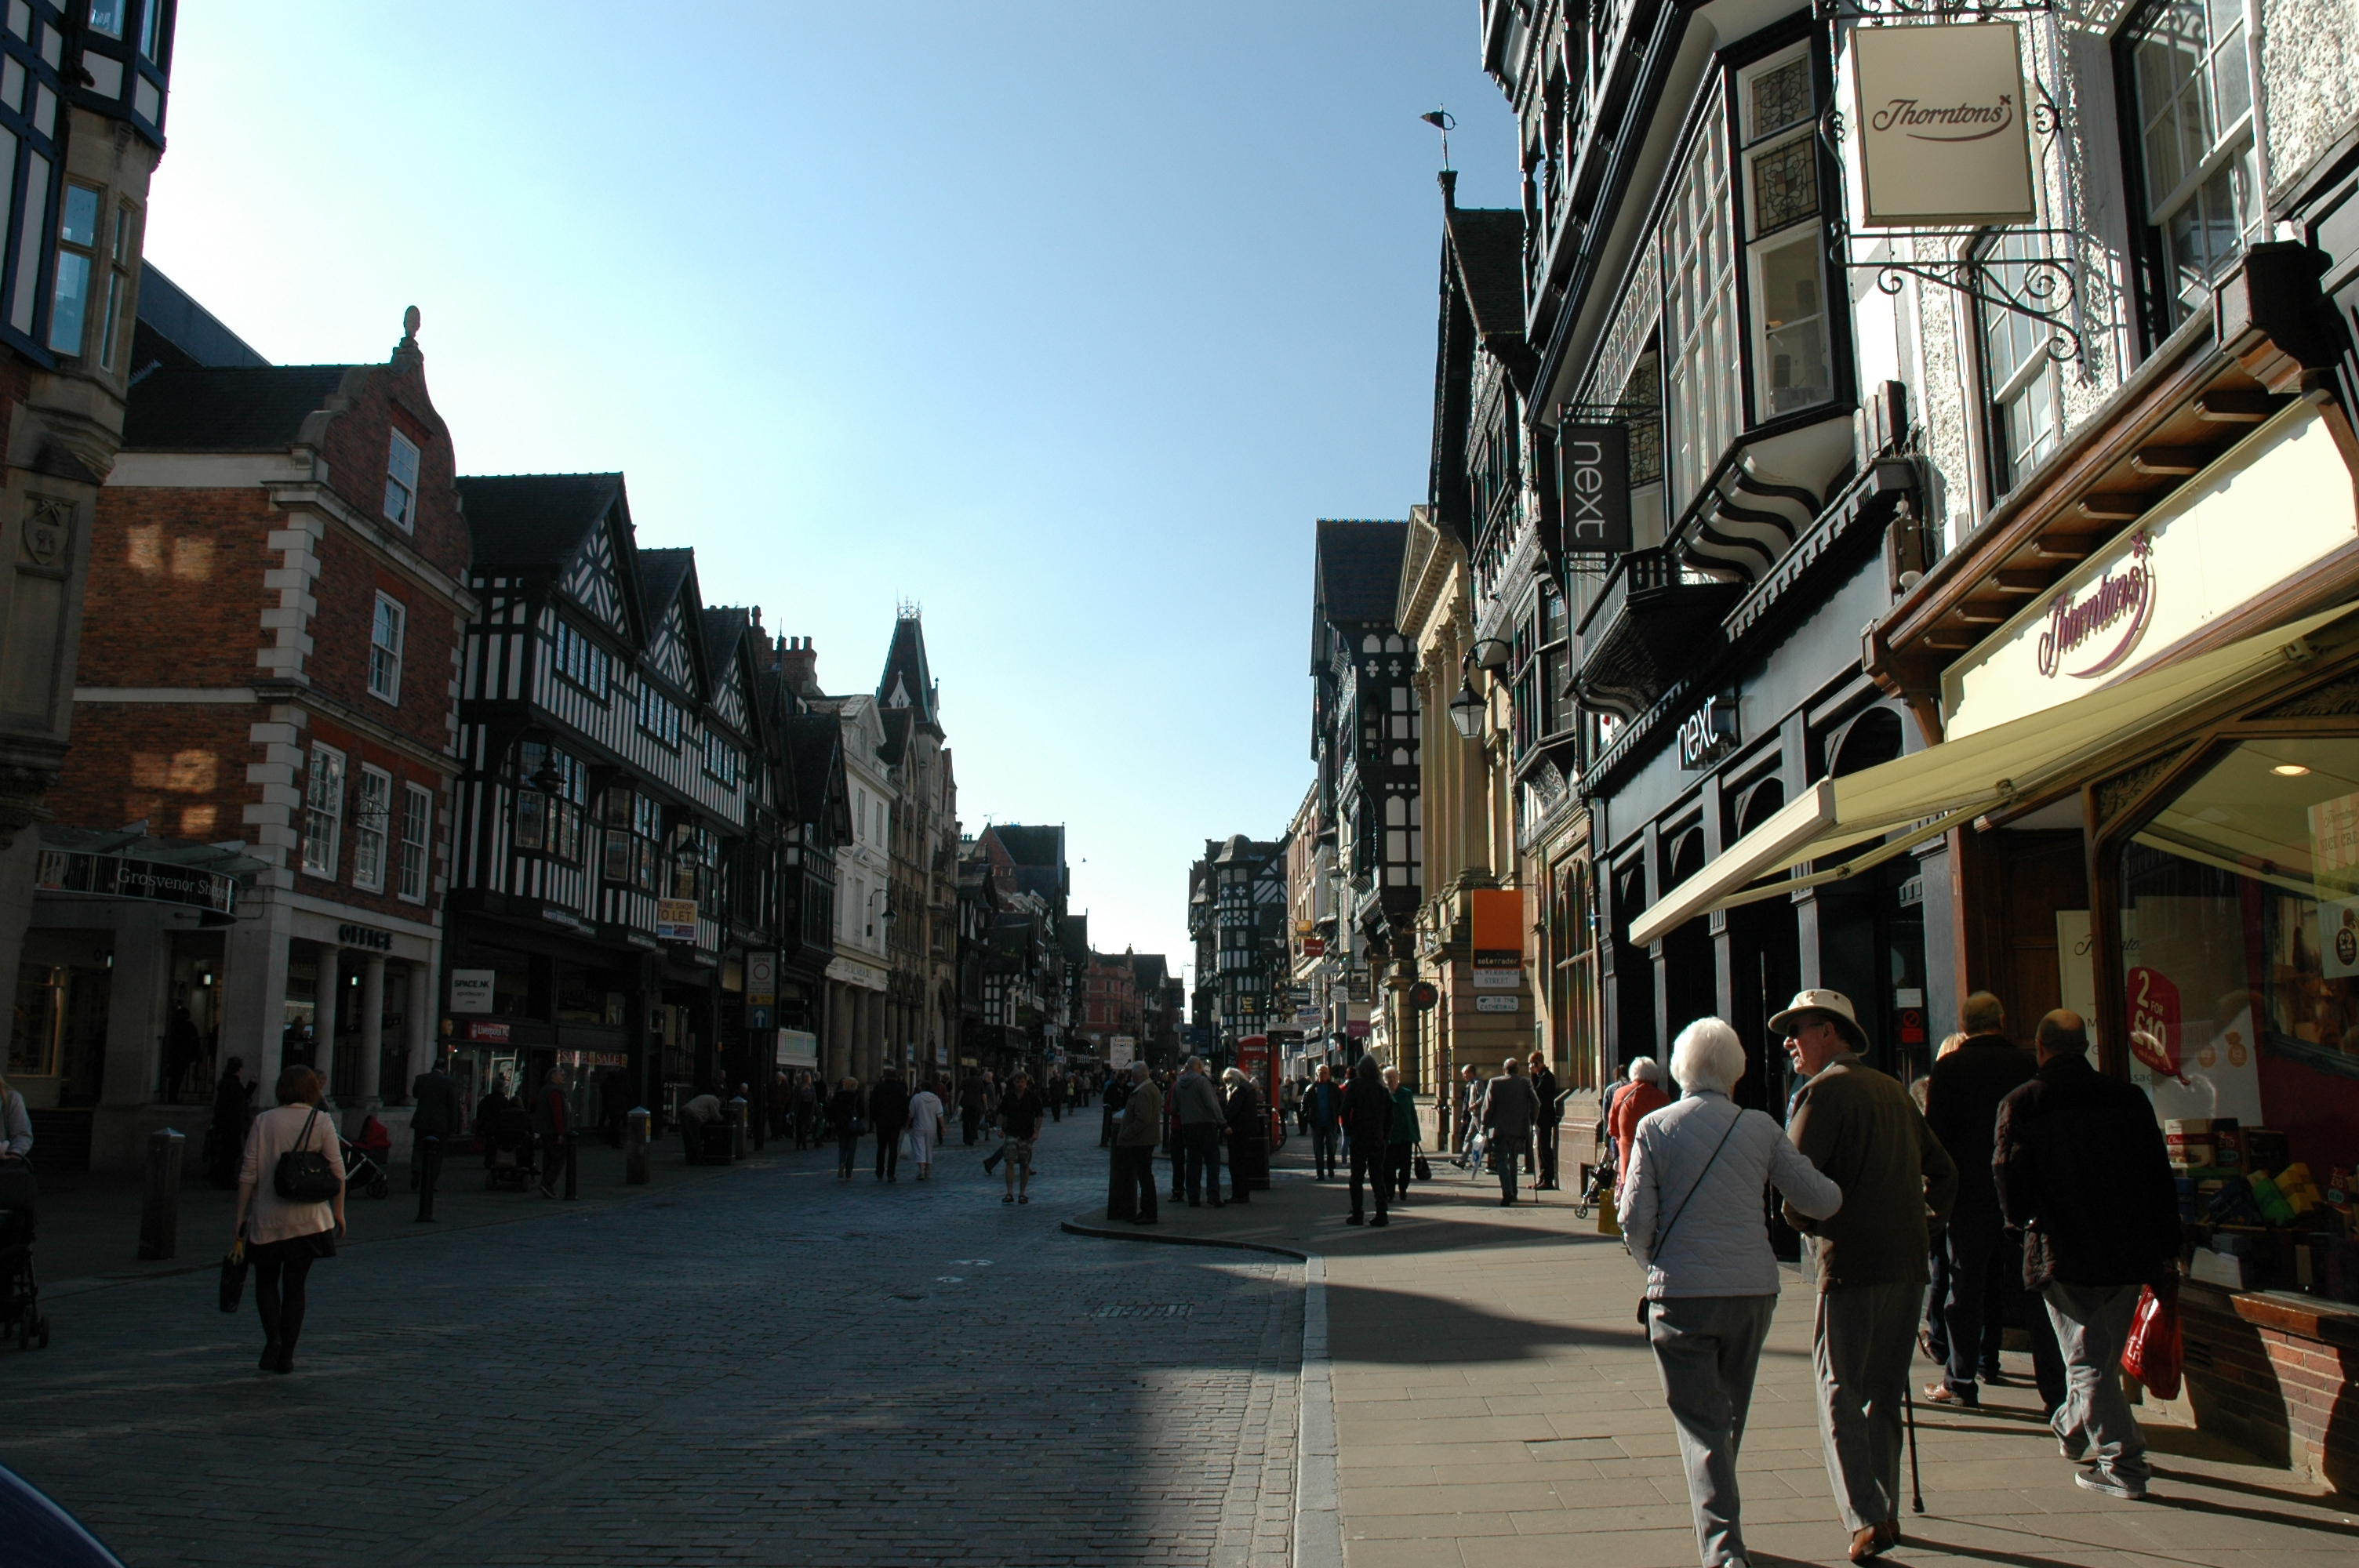 Chester city centre